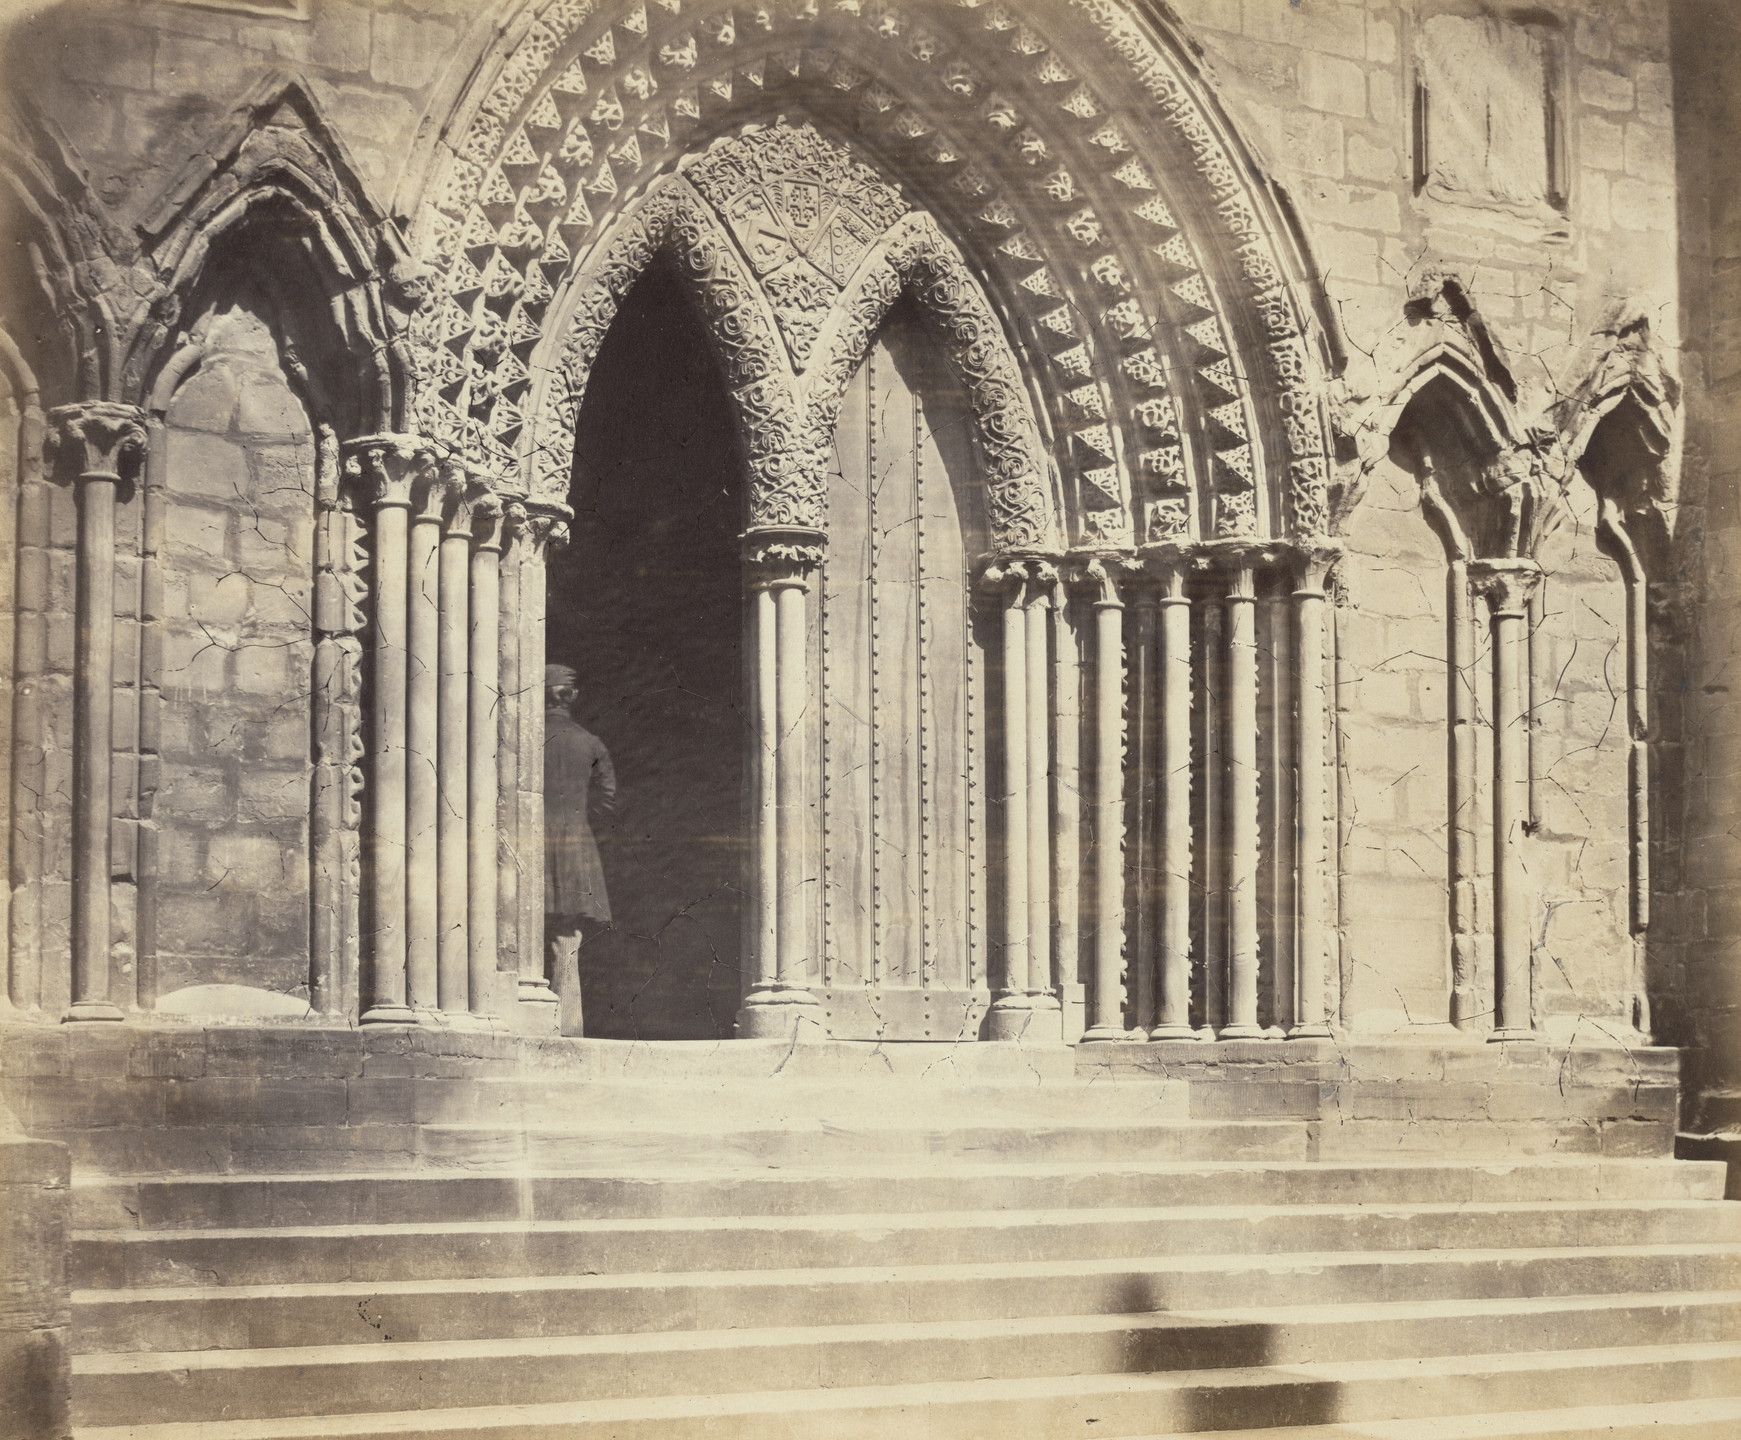 Roger Fenton. Lichfield Cathedral, Porch of the South Transept. c. 1855